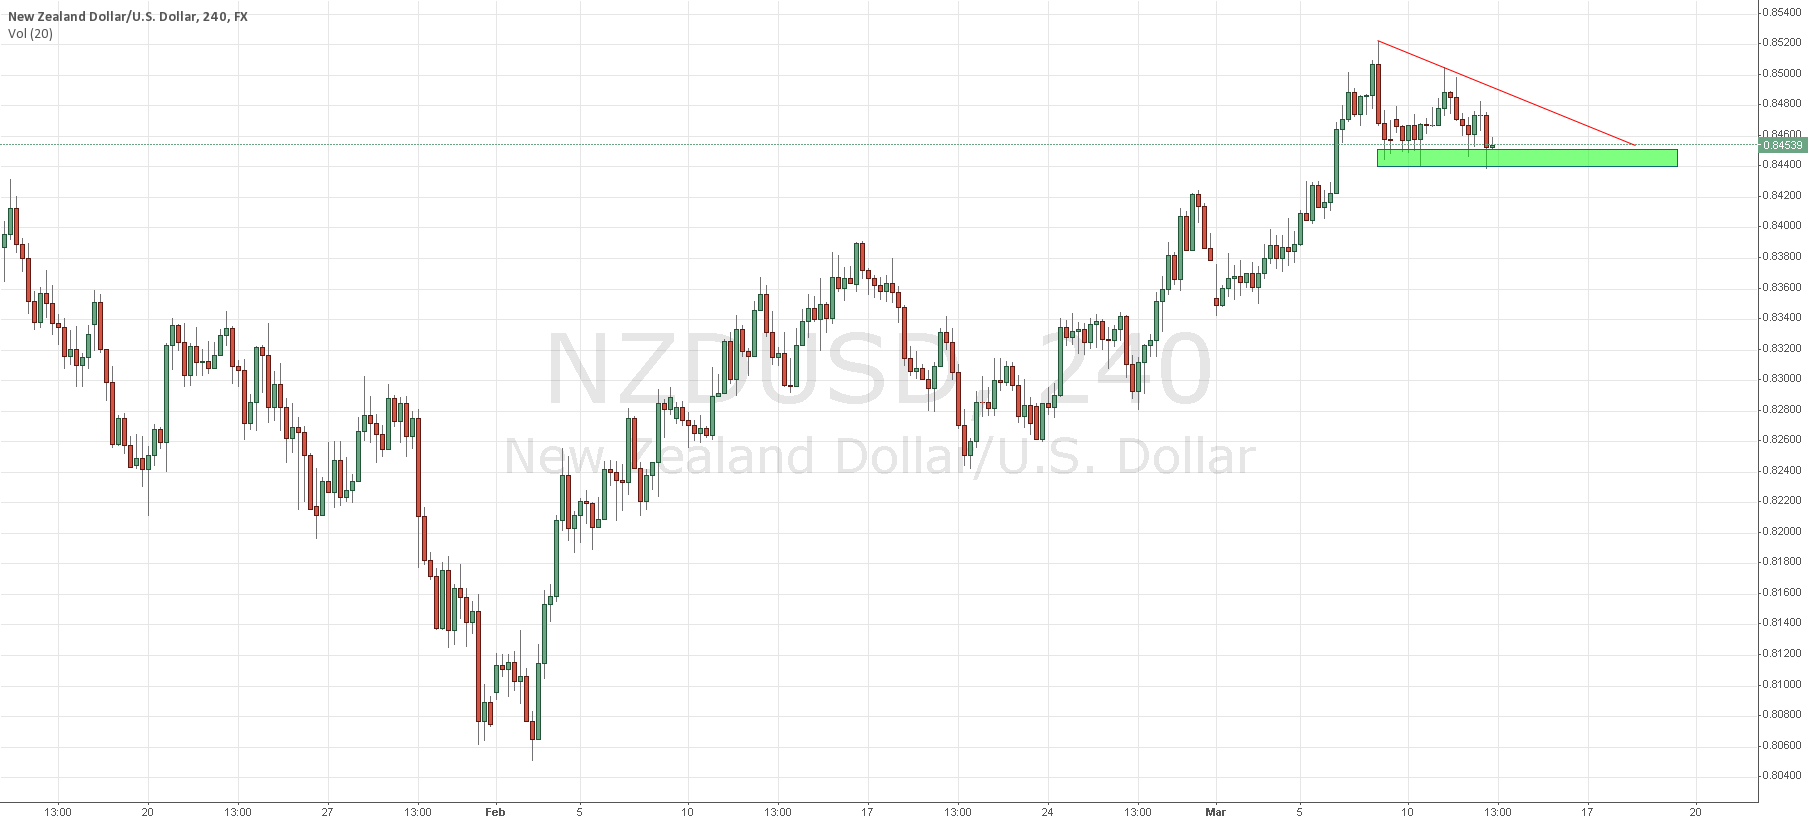 NZDUSD Short Term Support Region (0.844X/5X)